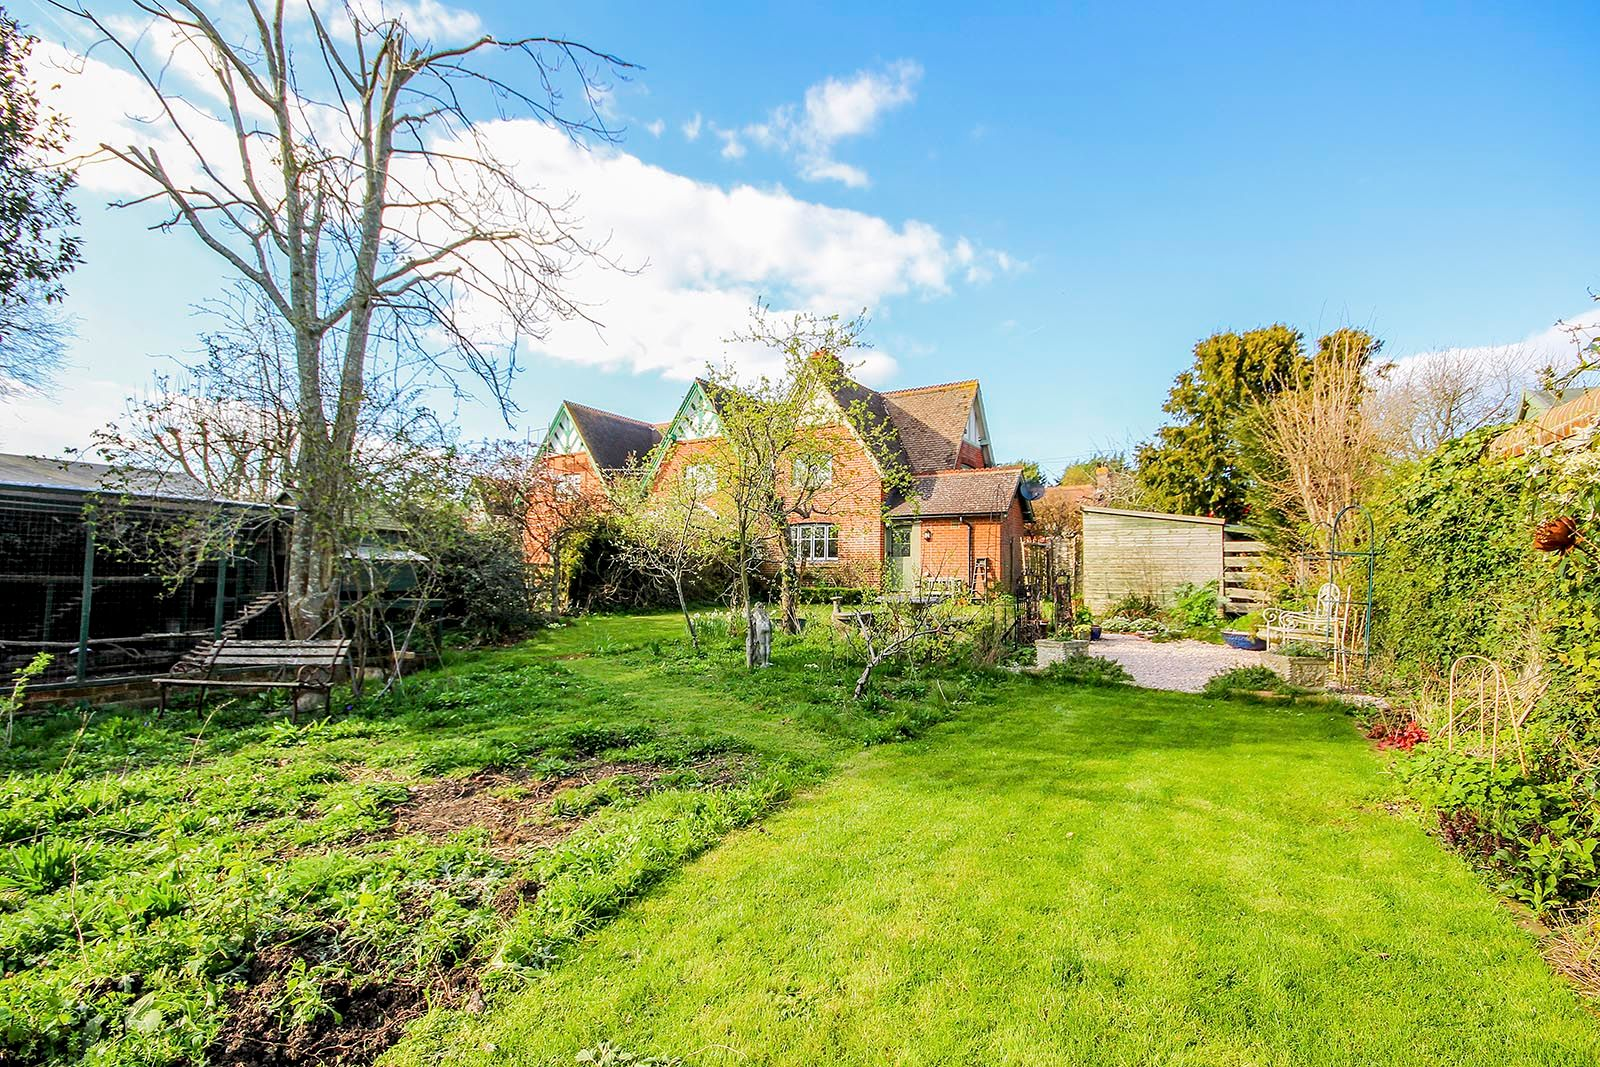 2 bed house for sale in The Street (COMP JULY 19) 8